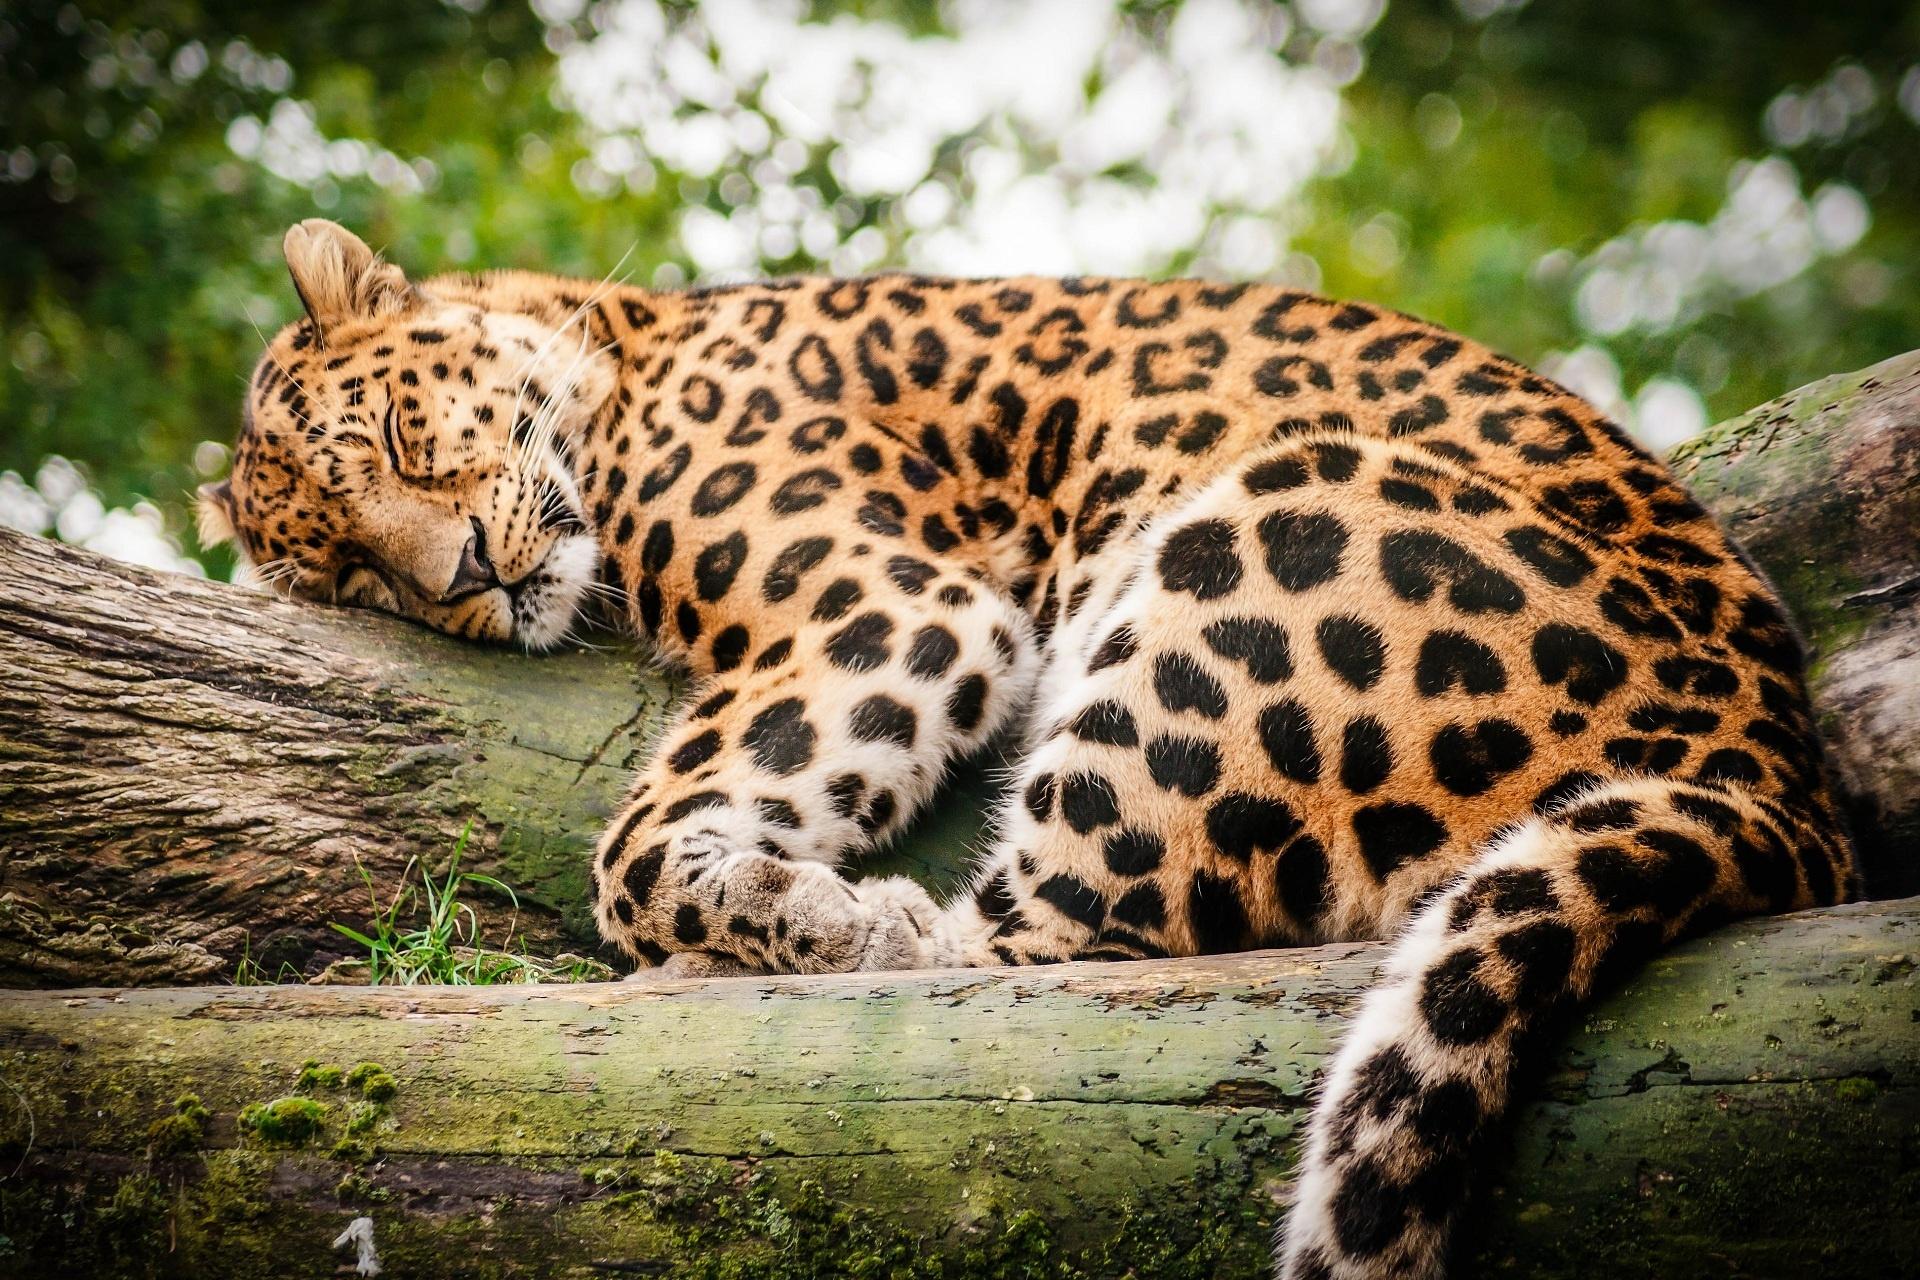 leopard wild cat rest sleep log wallpaper | 1920x1280 | 219367